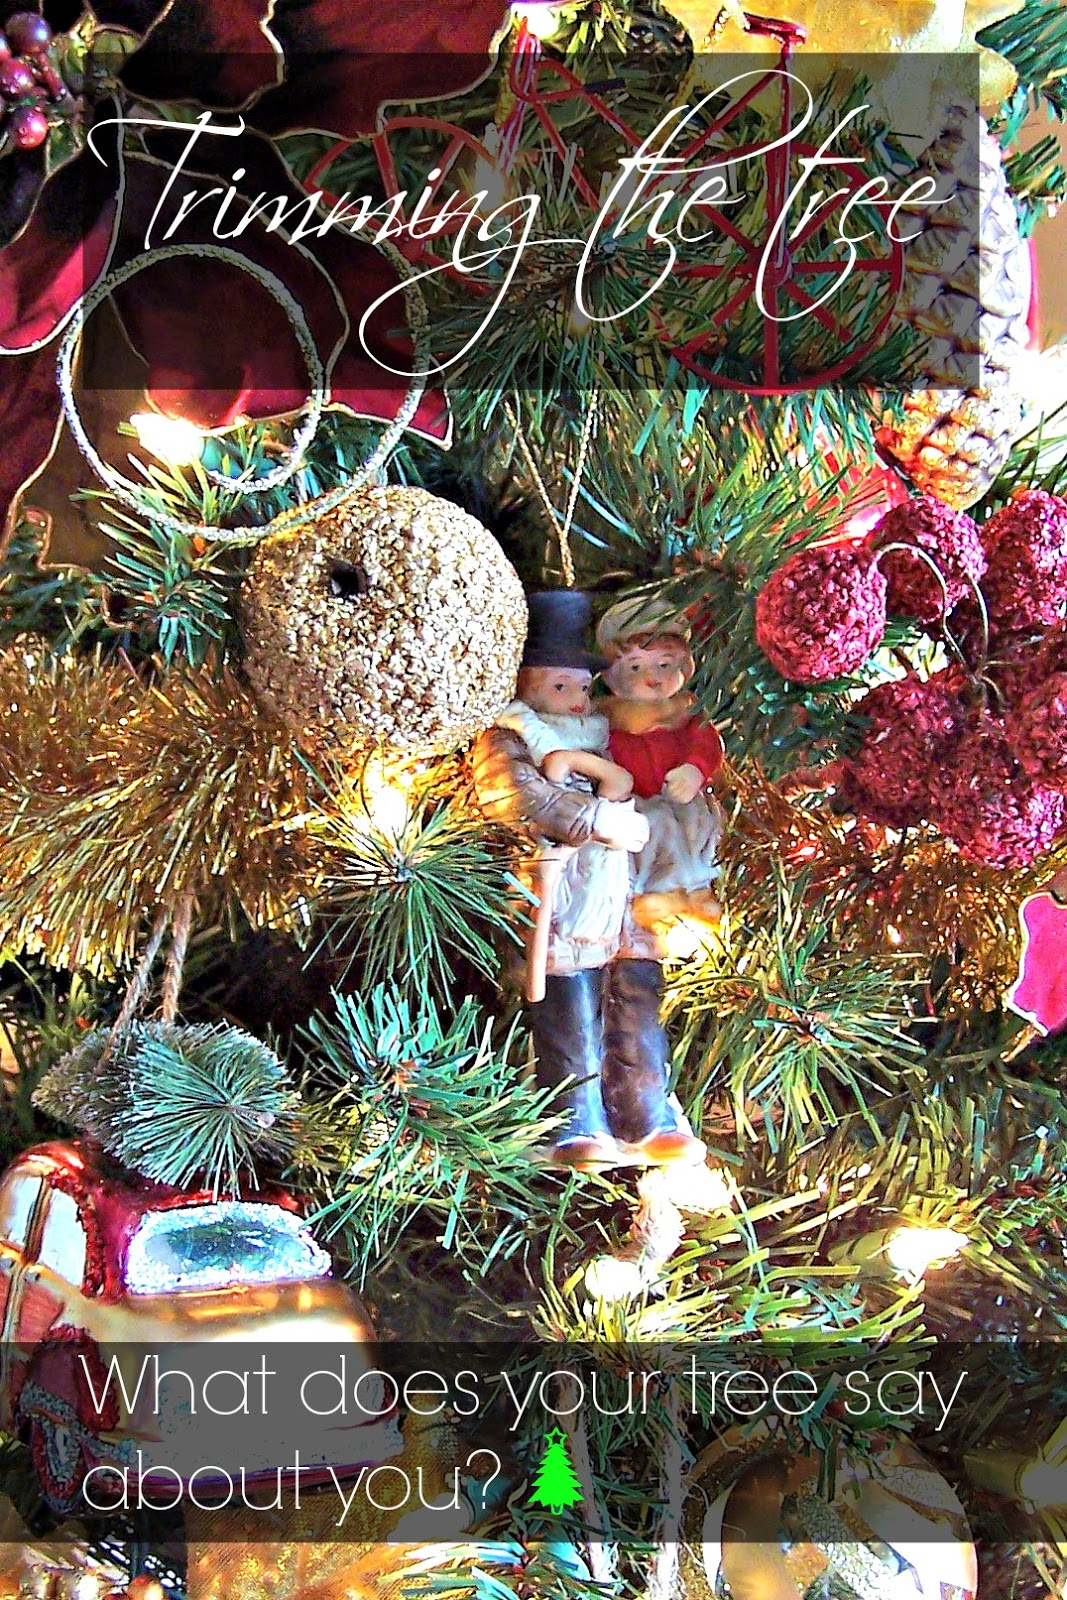 Olla-Podrida: What Does your Christmas Tree Say about You?